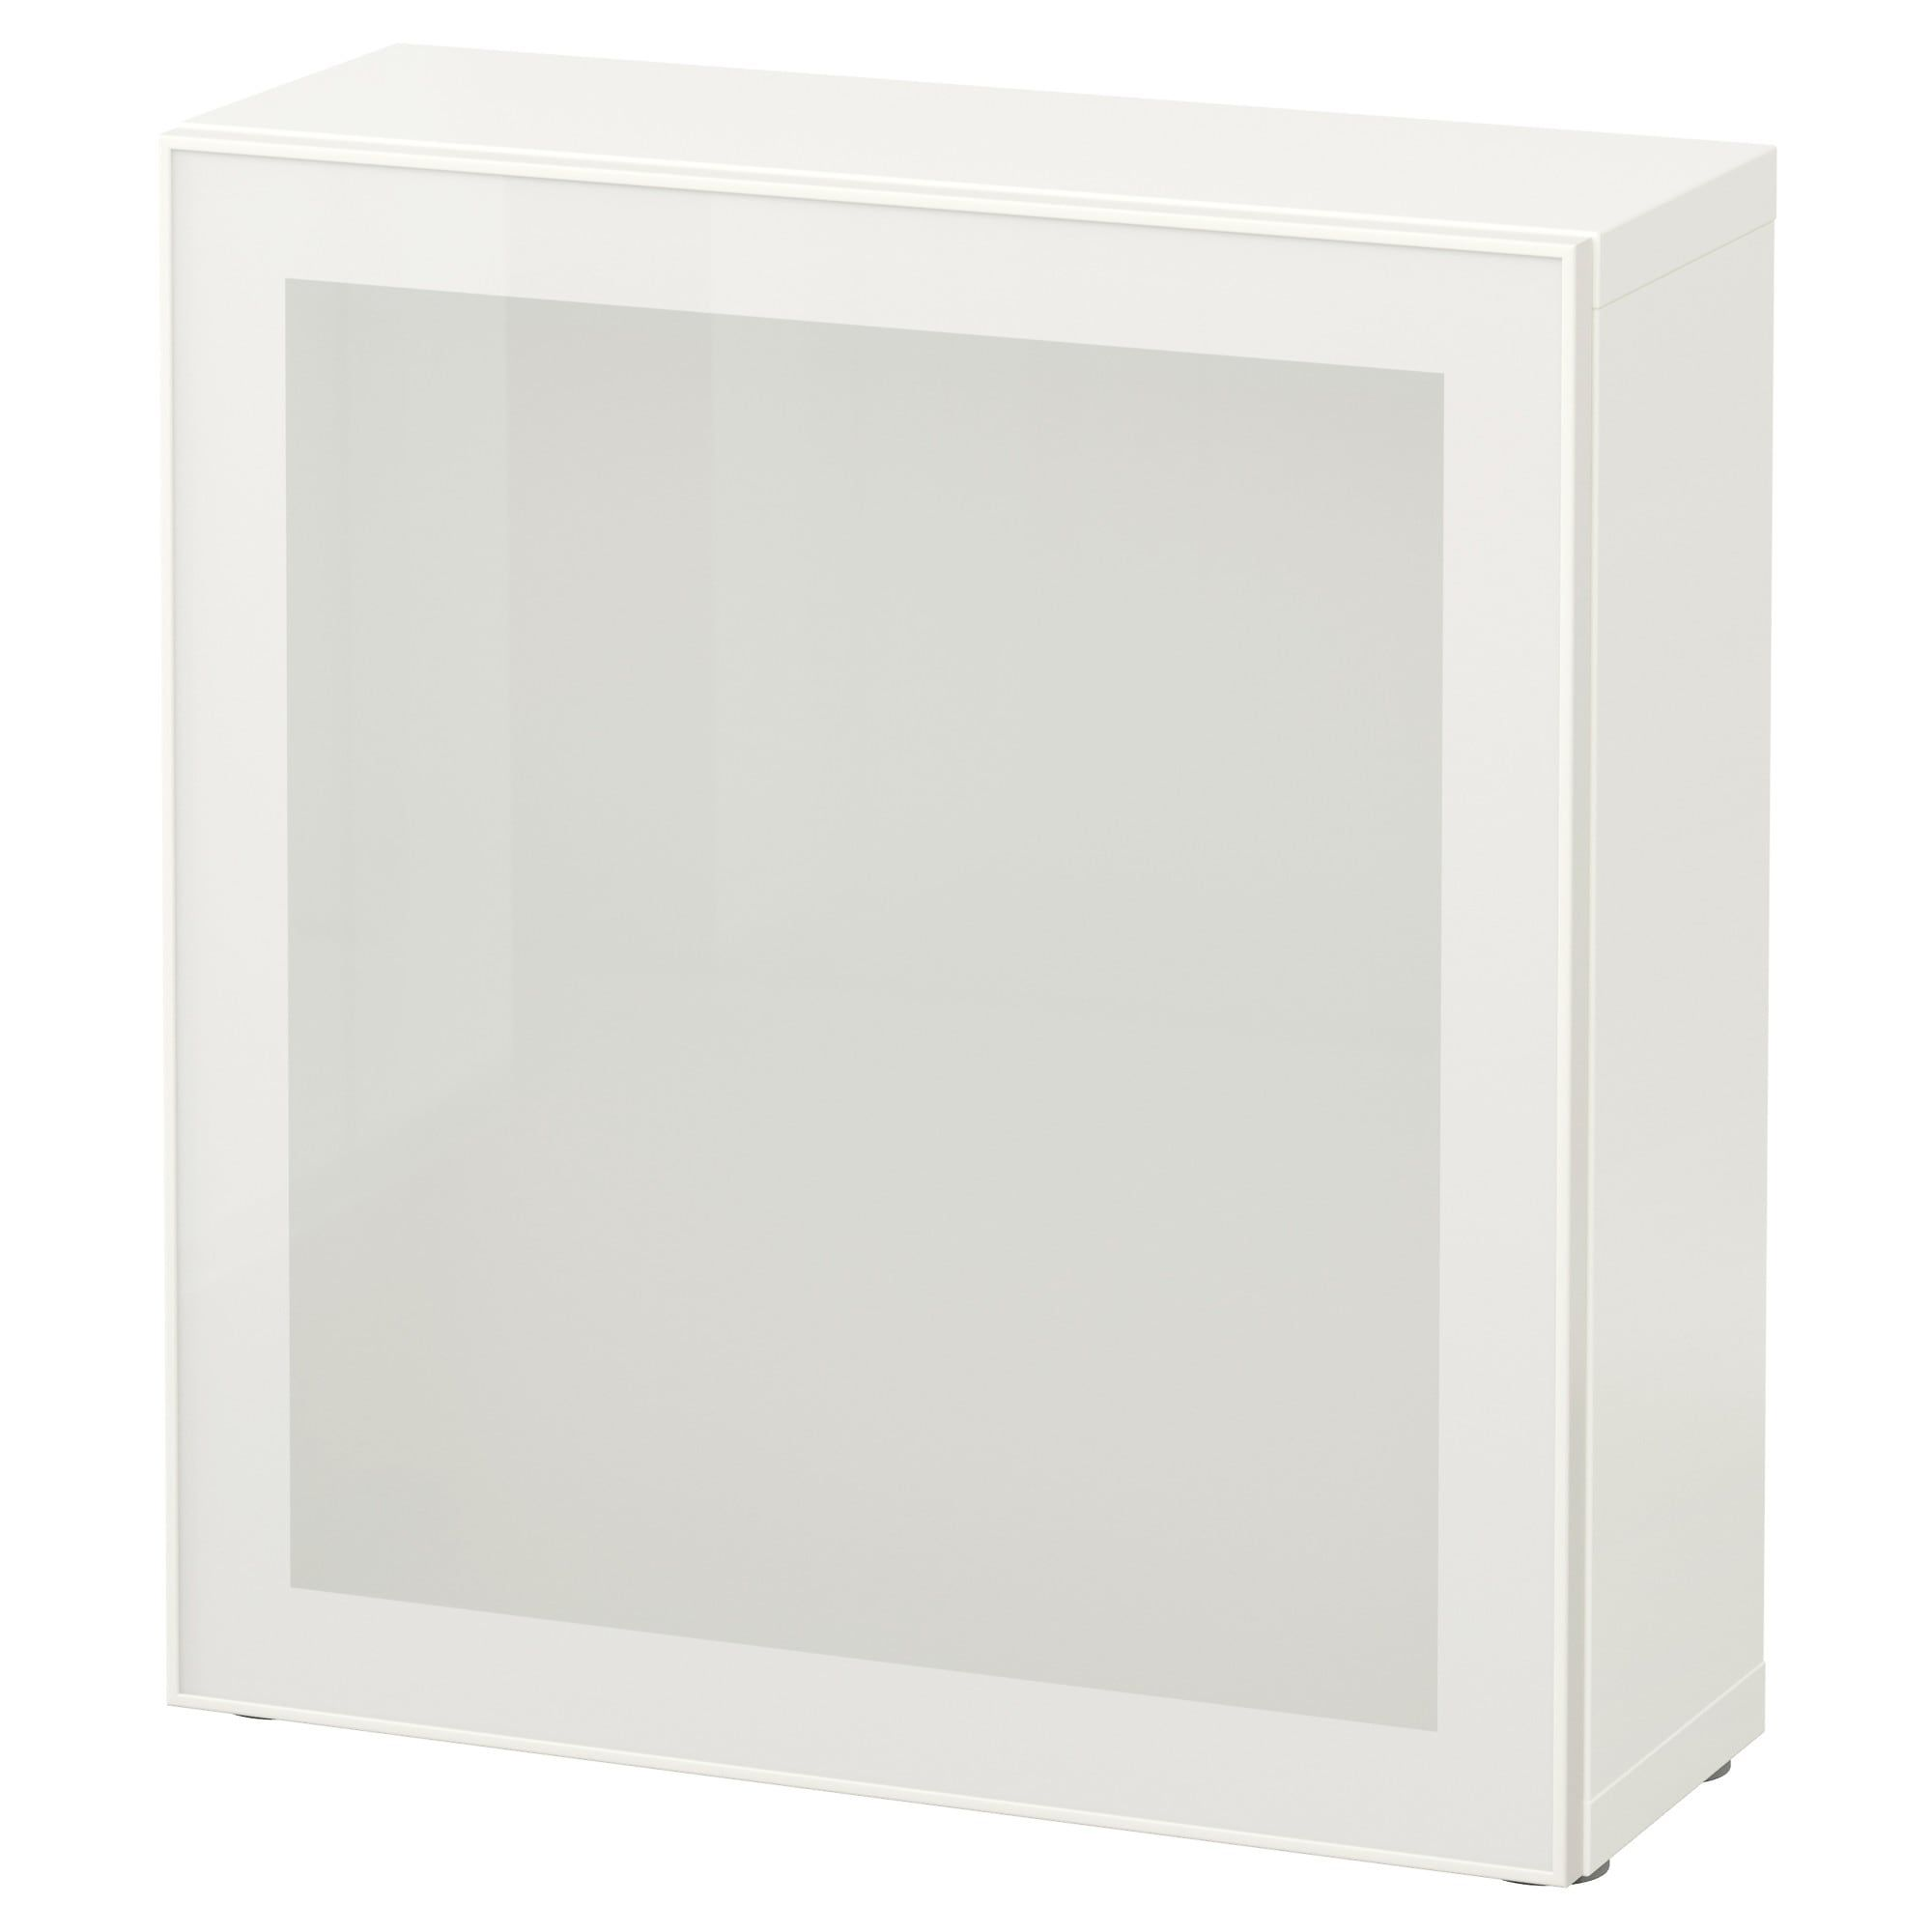 white, Glassvik frosted glass